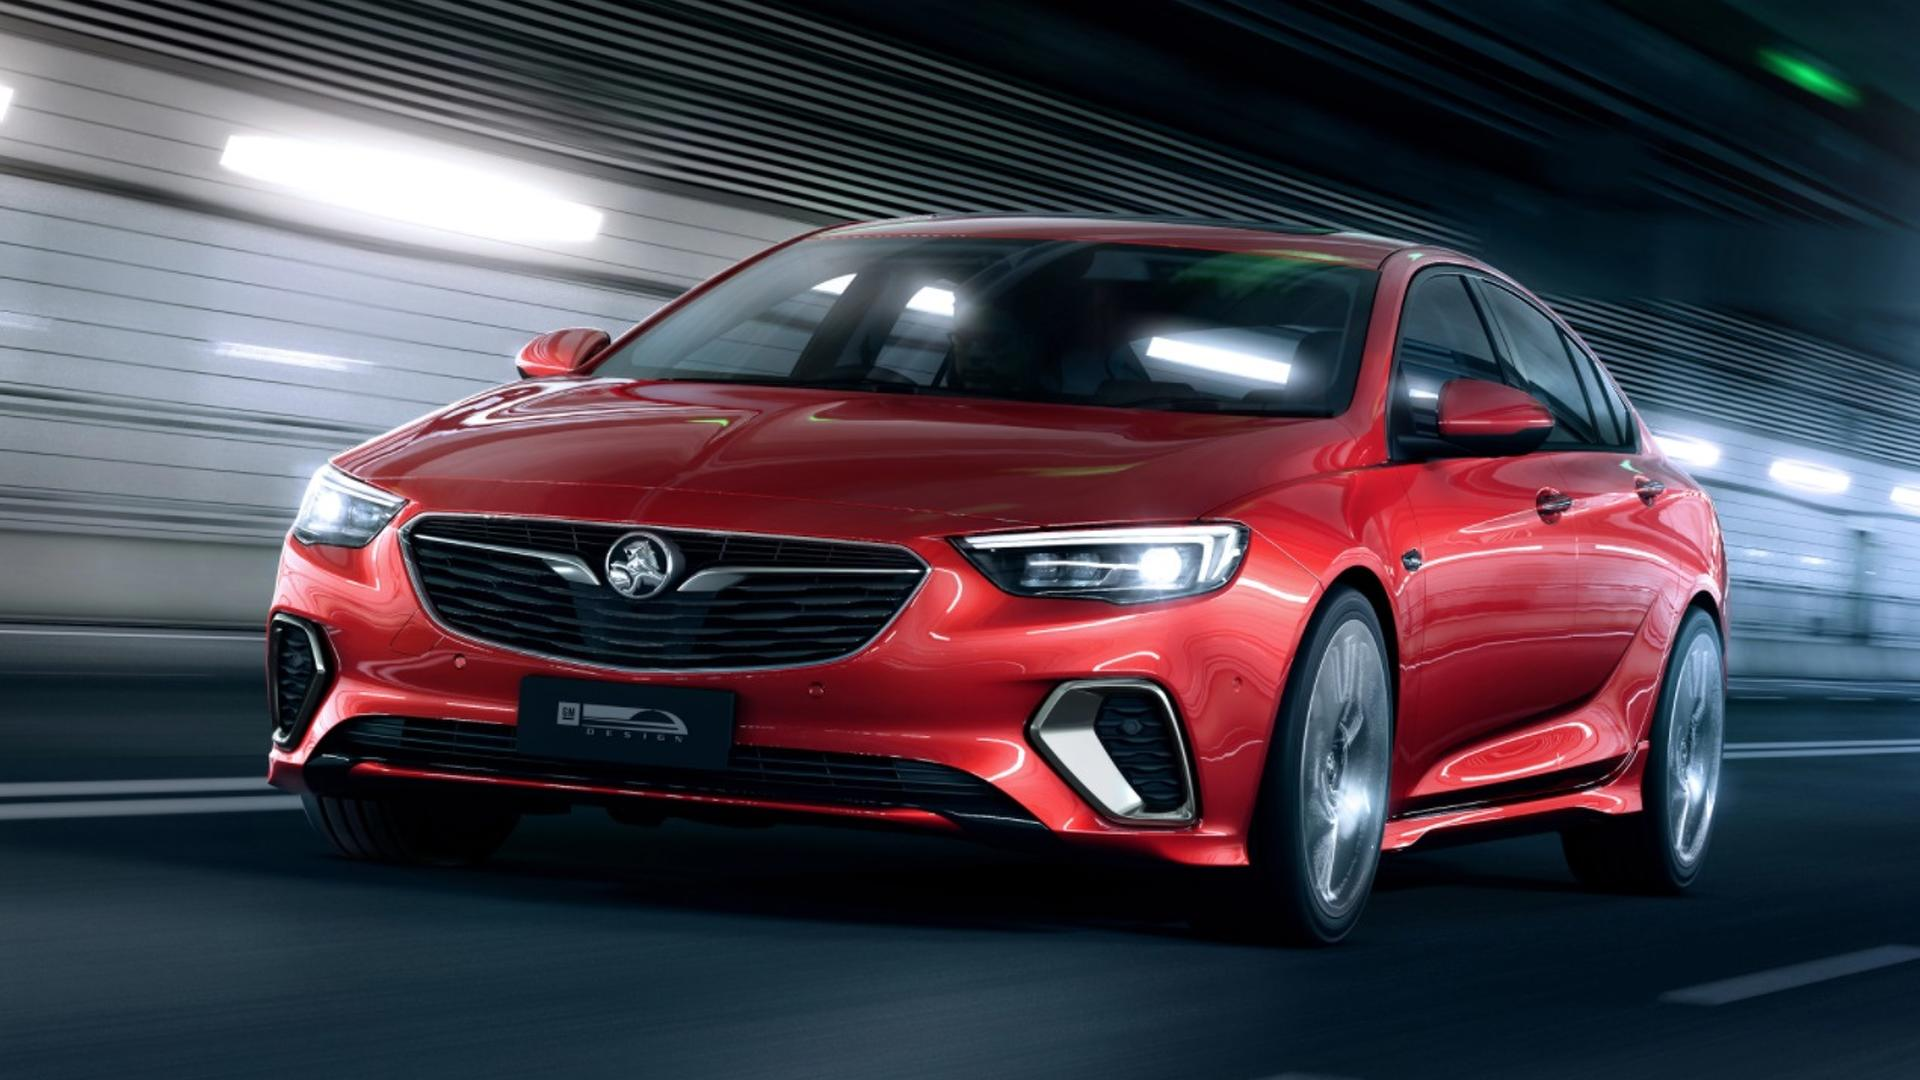 Holden axes Commodore as it switches to full SUV and Ute lineup